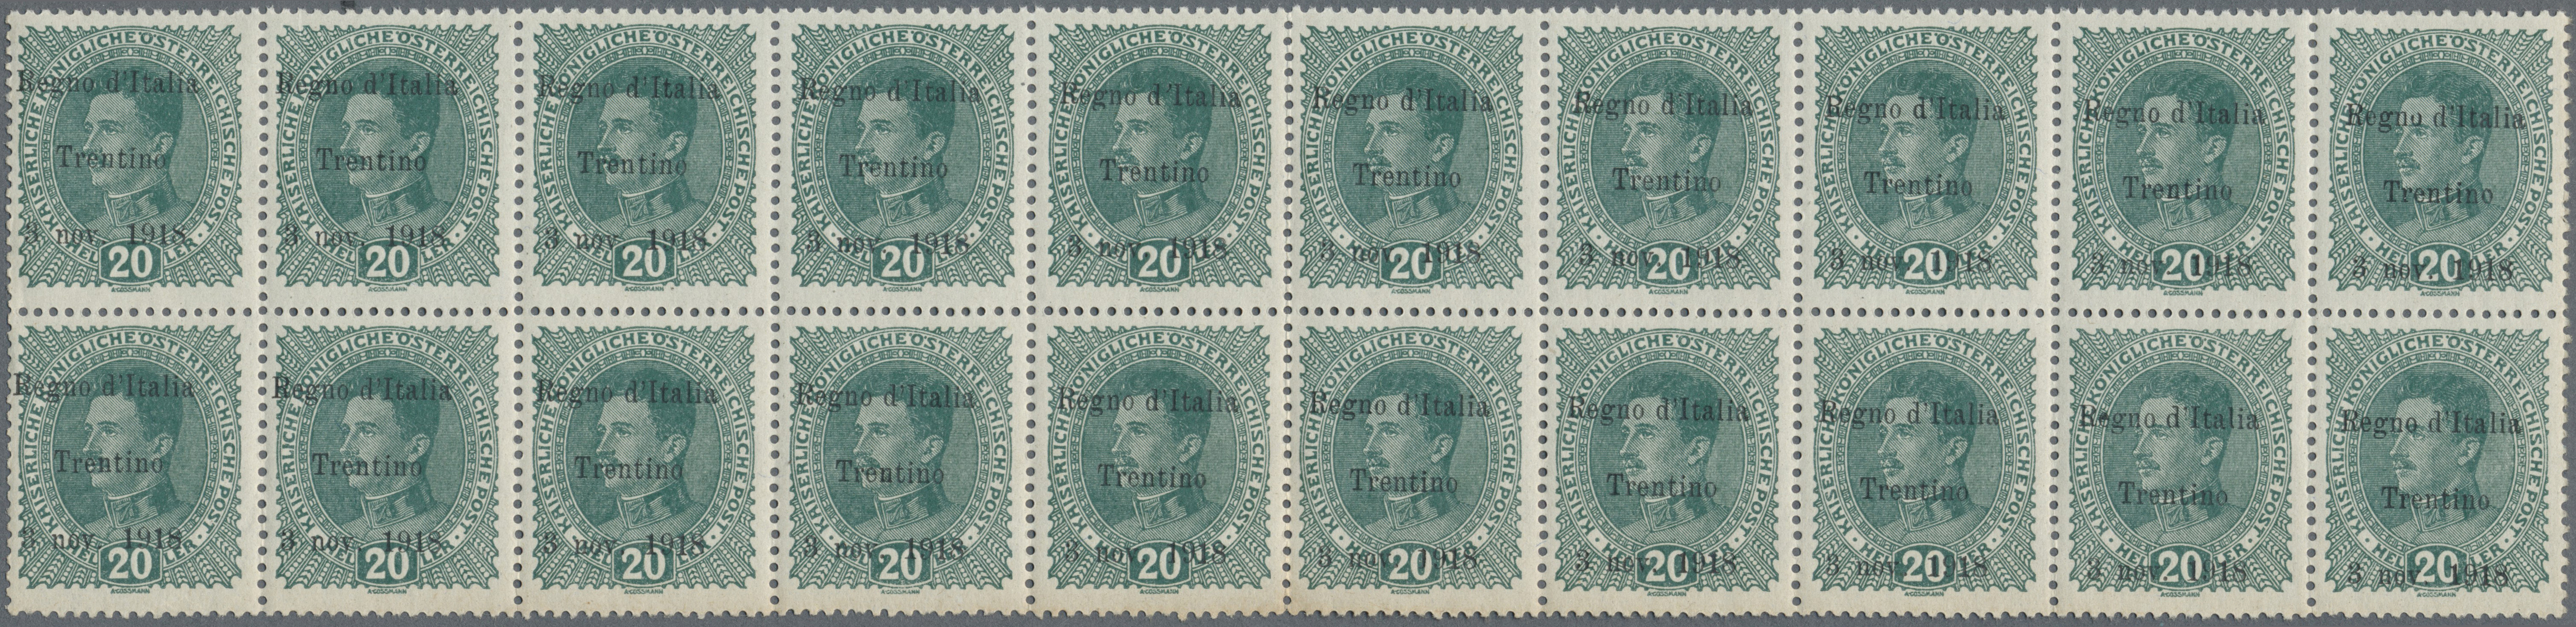 Lot 1009 - Italienische Besetzung 1918/23 - Trentino  -  Auktionshaus Christoph Gärtner GmbH & Co. KG Auction #41 Special auction part one